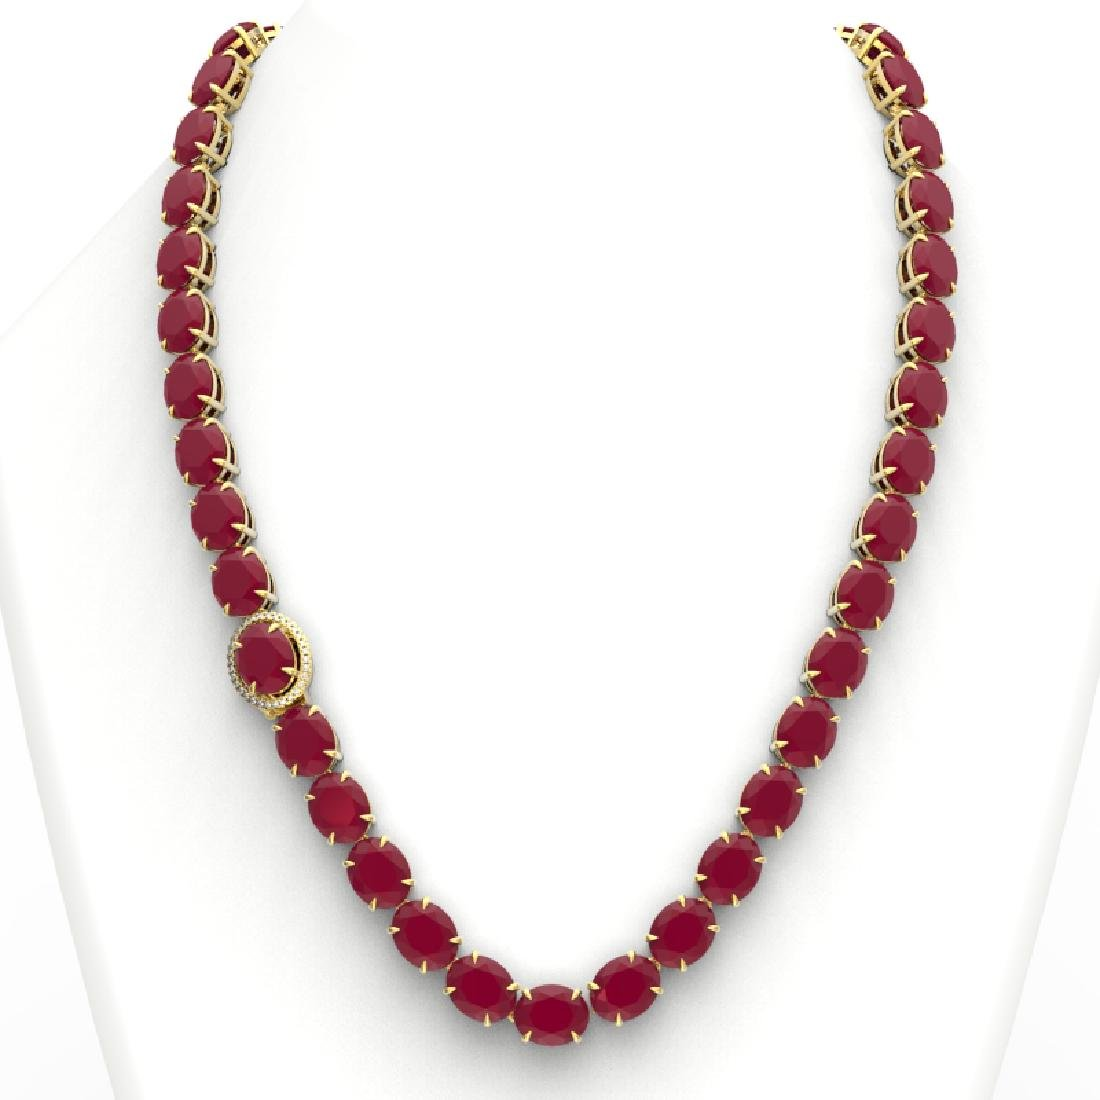 170 CTW Ruby & VS/SI Diamond Necklace 14K Yellow Gold - 3